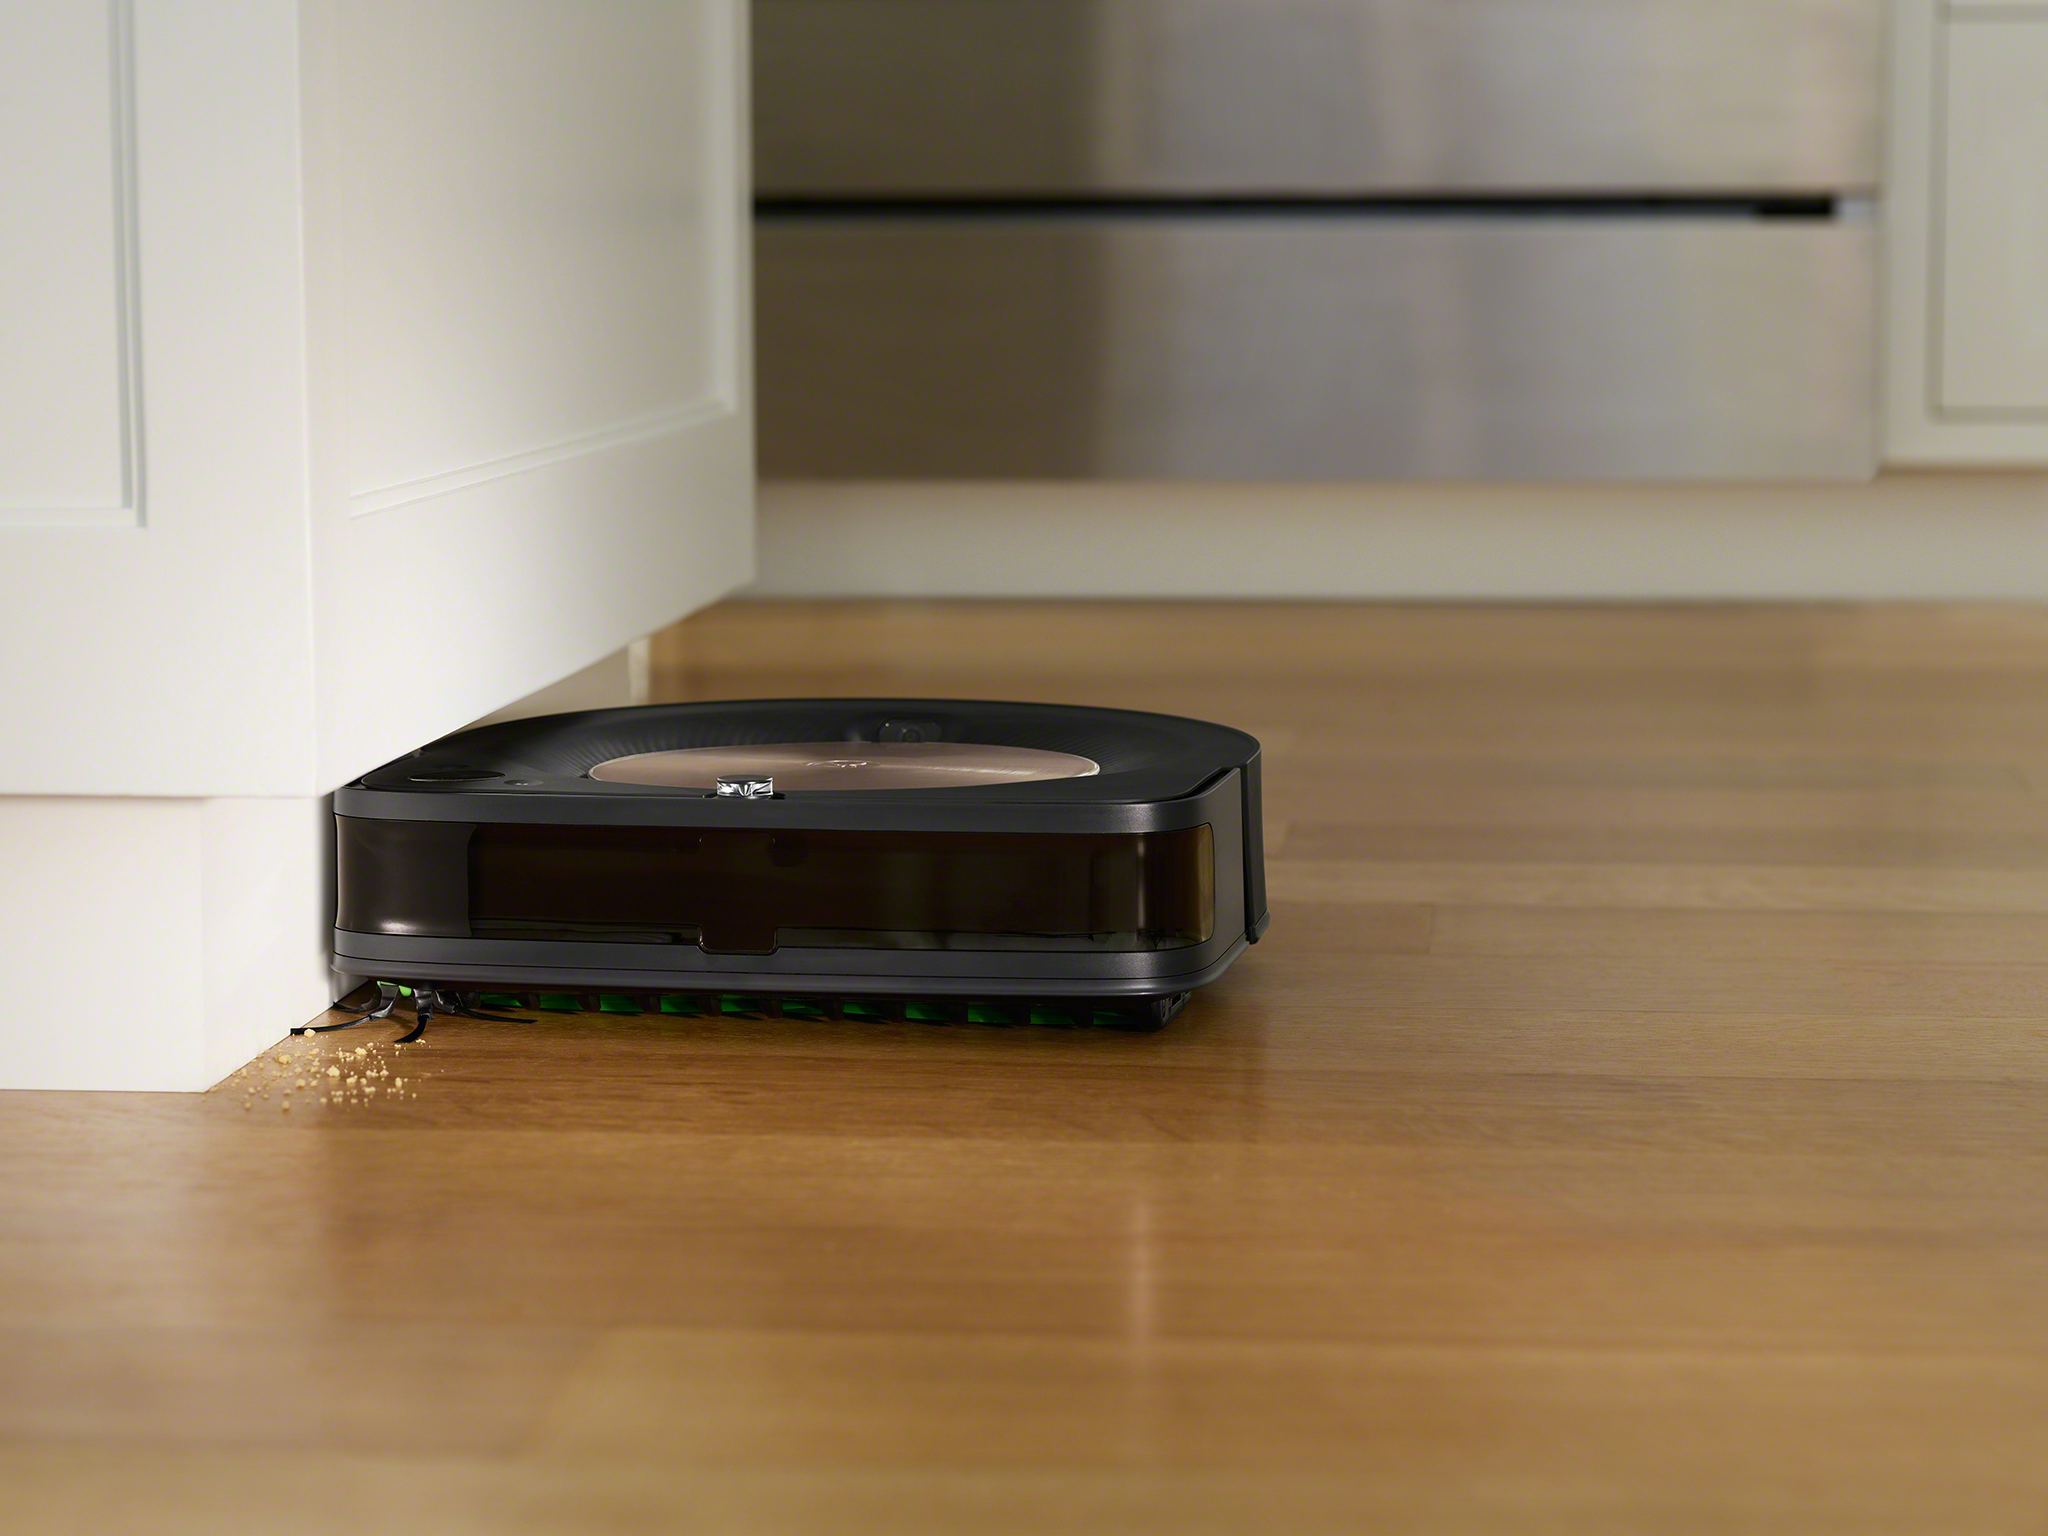 The Roomba® s9+ robot's specially designed Corner Brush uses five angled arms to grab dirt and debris from deep in corners and along walls, directing it into the robot's path to be vacuumed up.